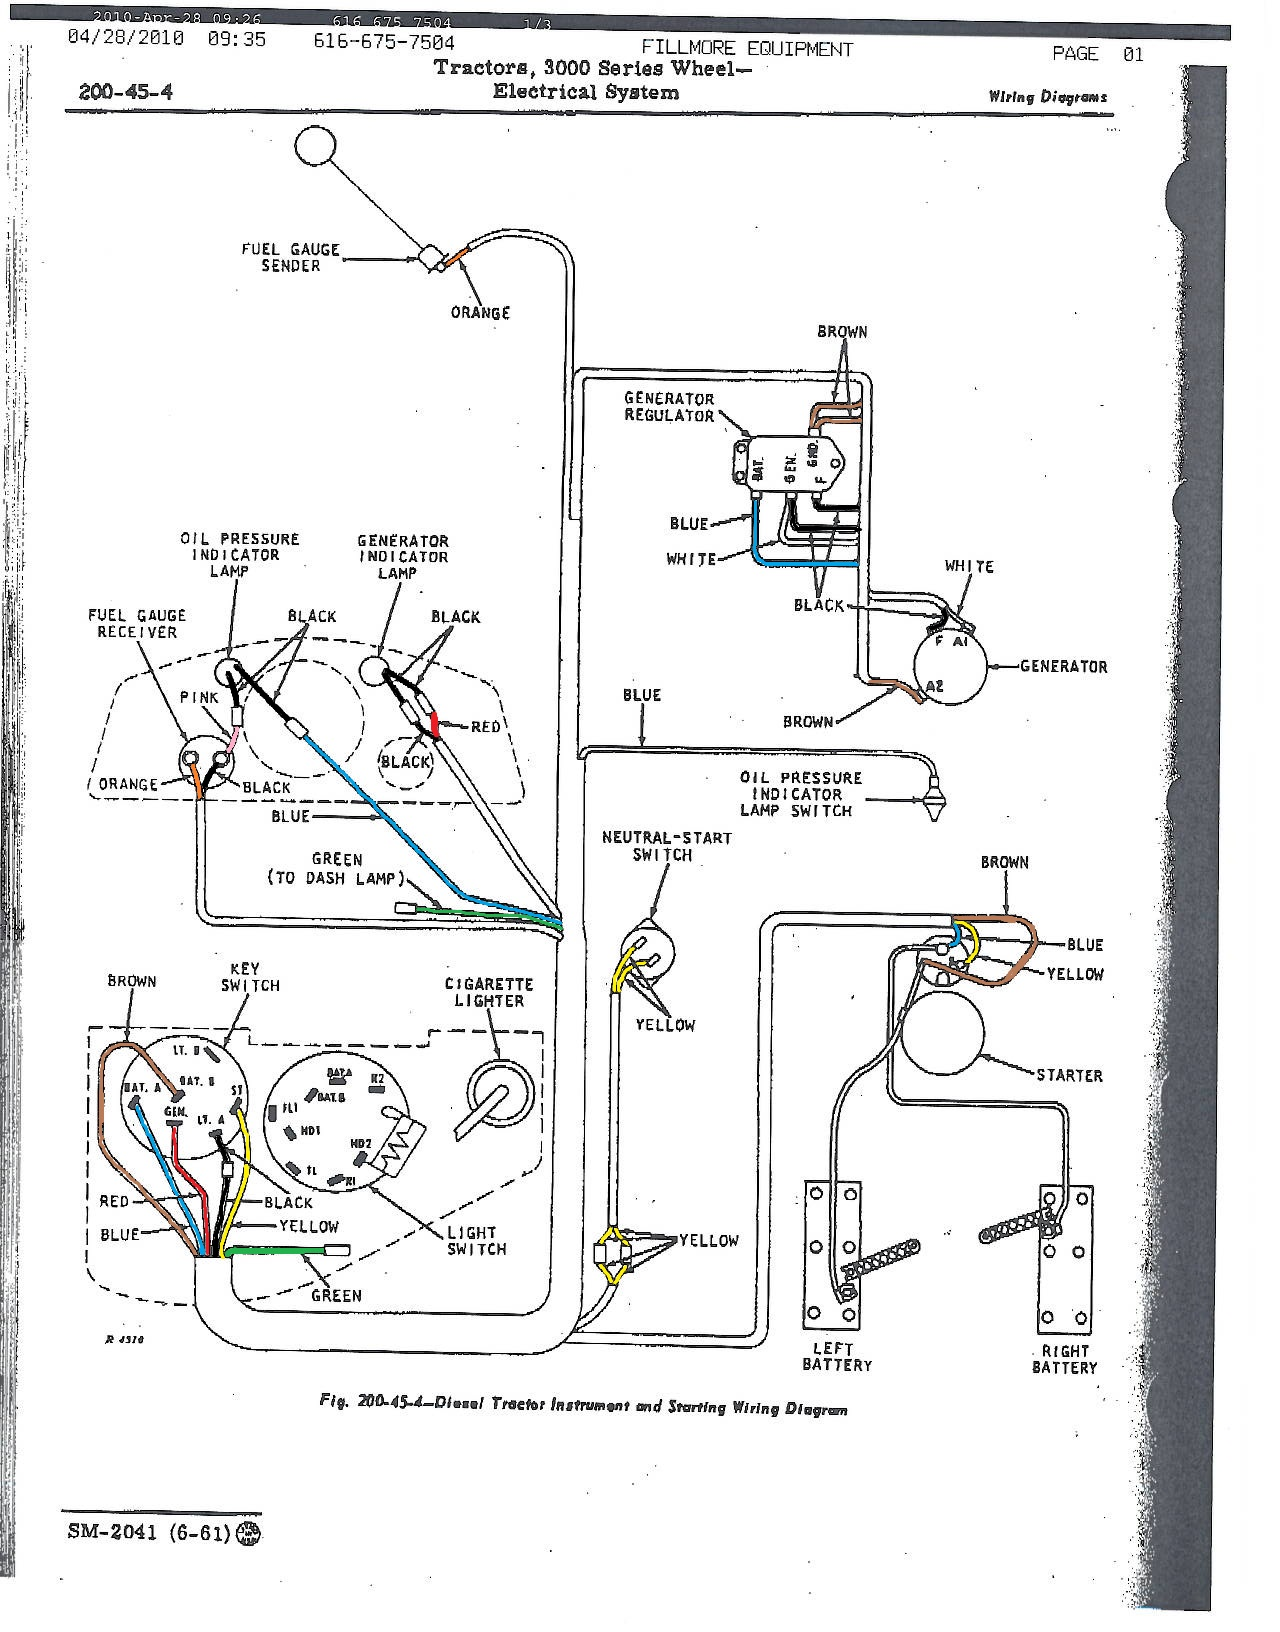 Diagram John Deere Solenoid Wiring Diagram Full